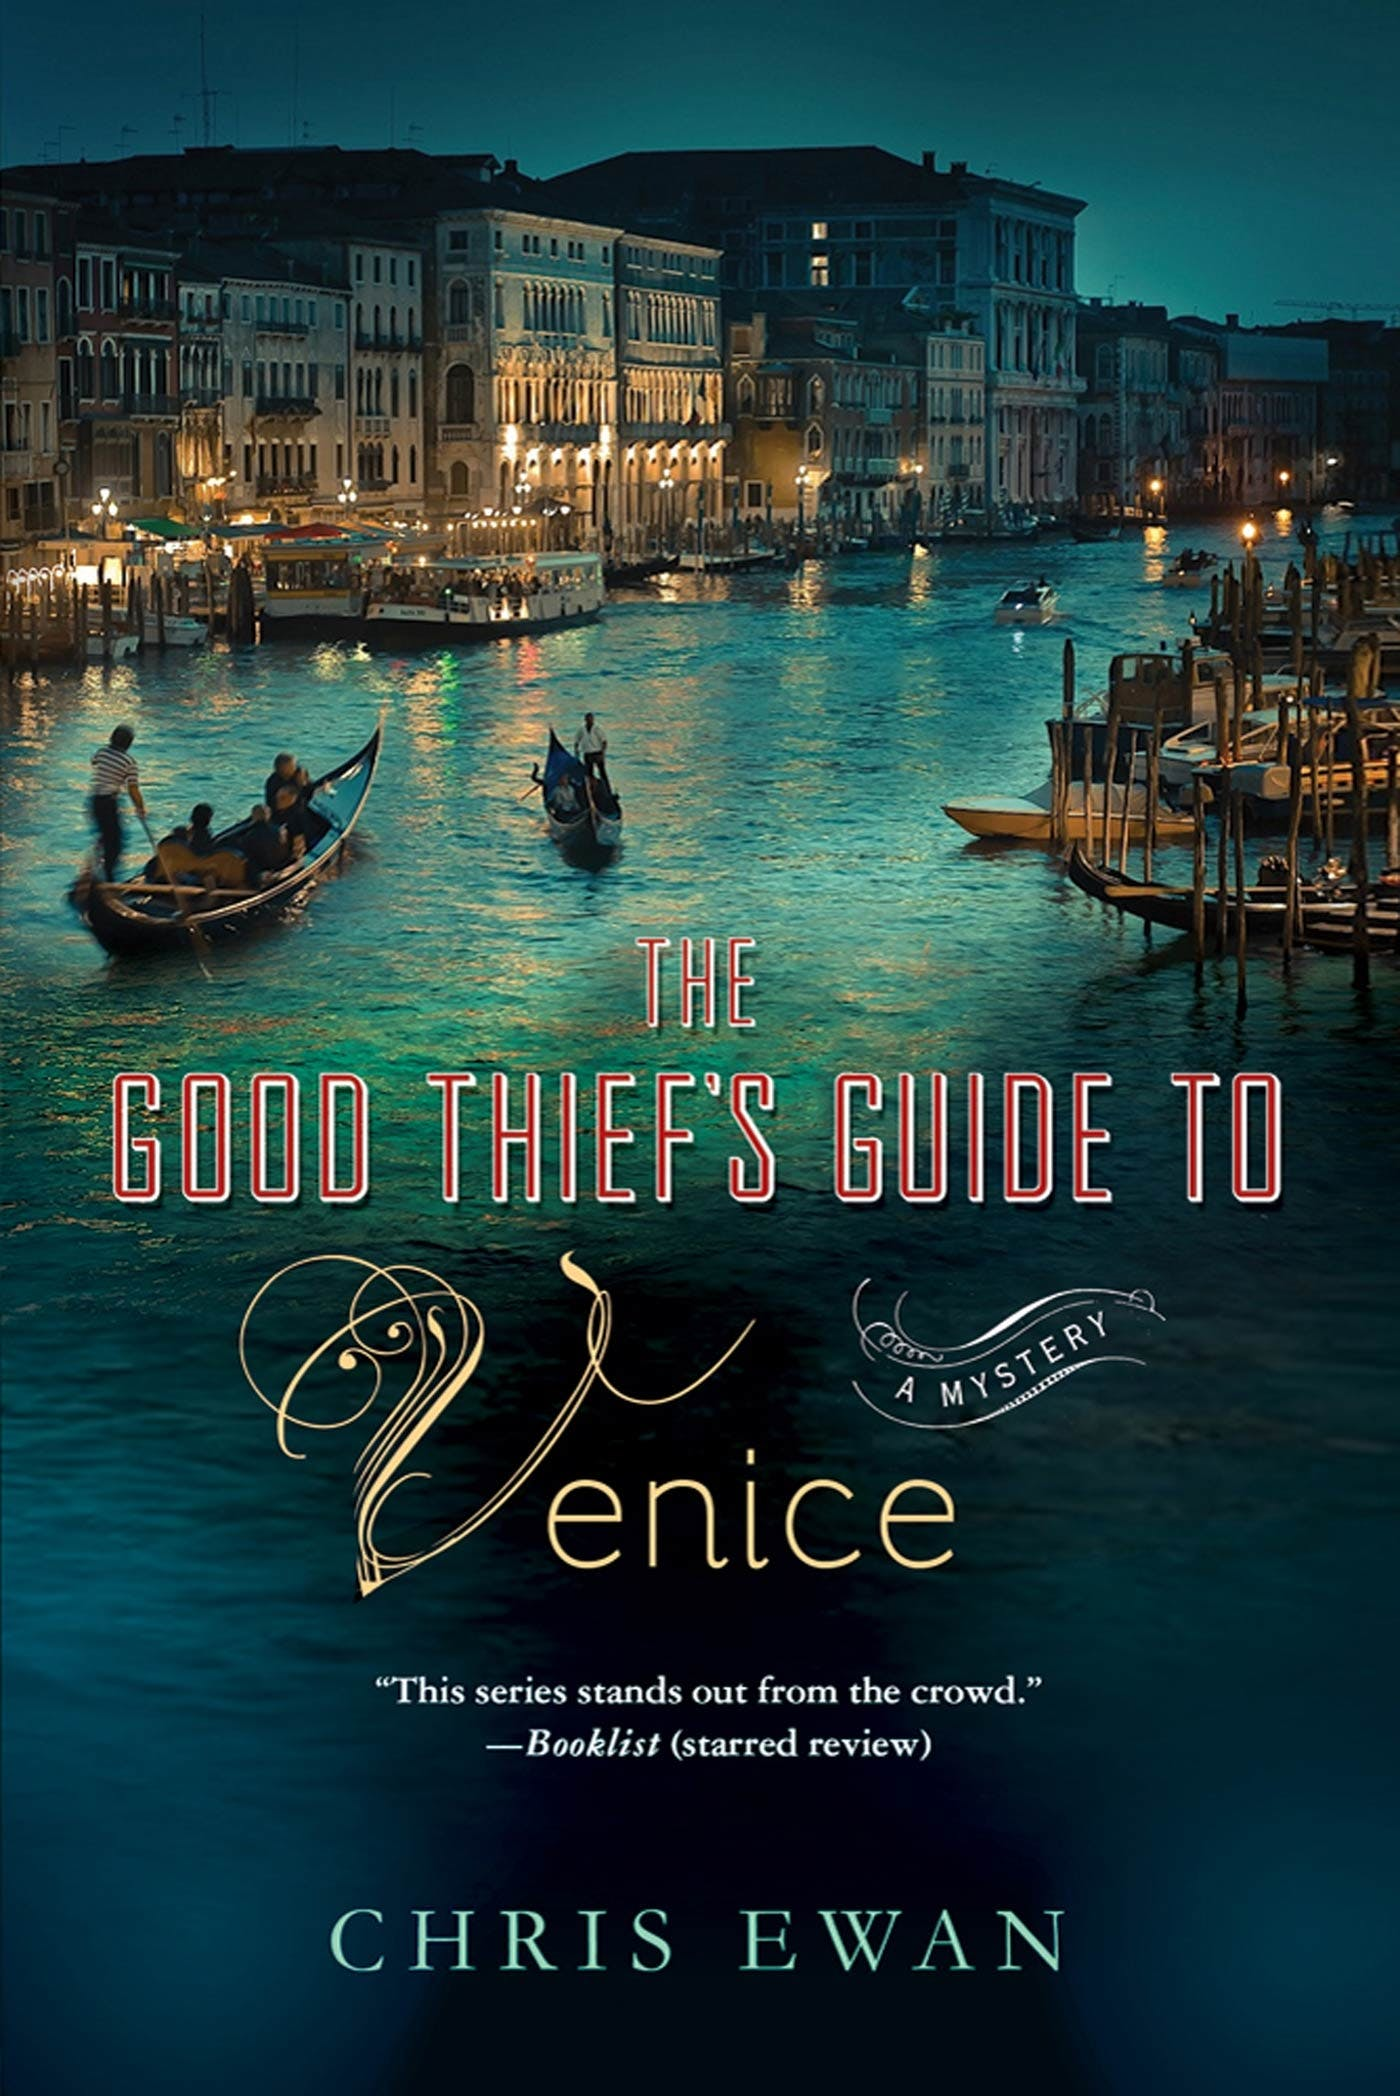 Image of The Good Thief's Guide to Venice